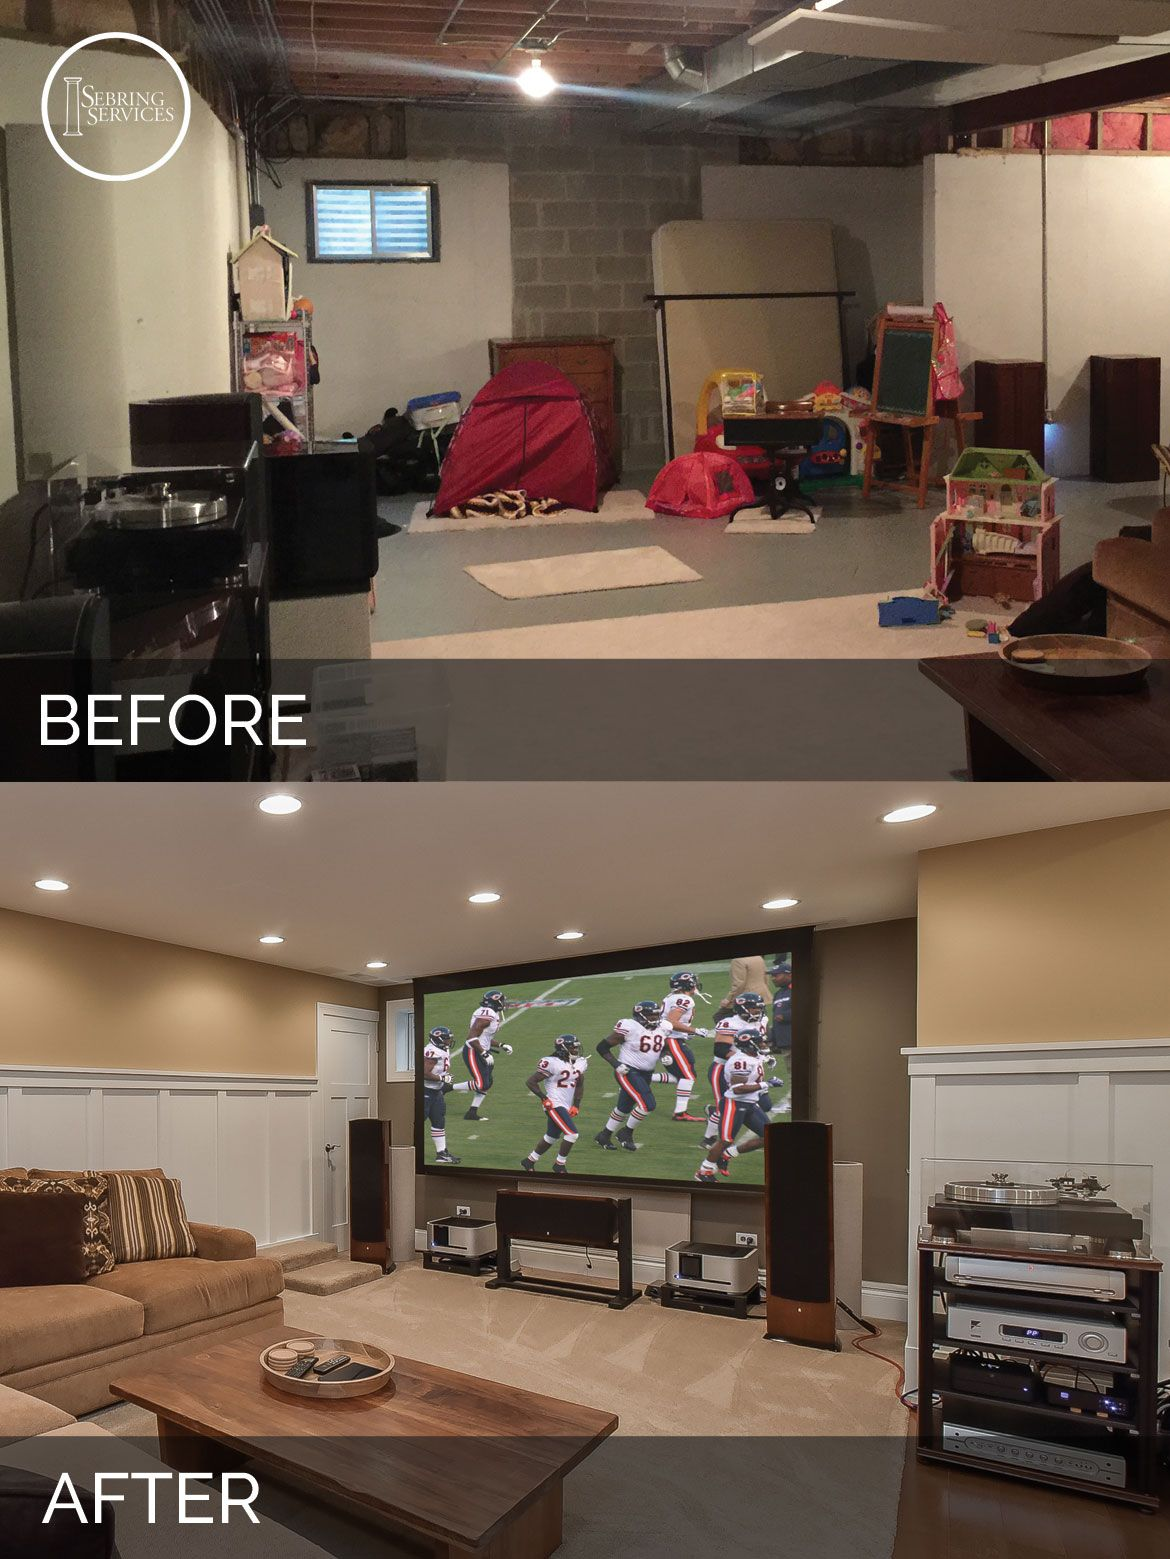 naperville basement before and after remodeling sebring services house pinterest. Black Bedroom Furniture Sets. Home Design Ideas